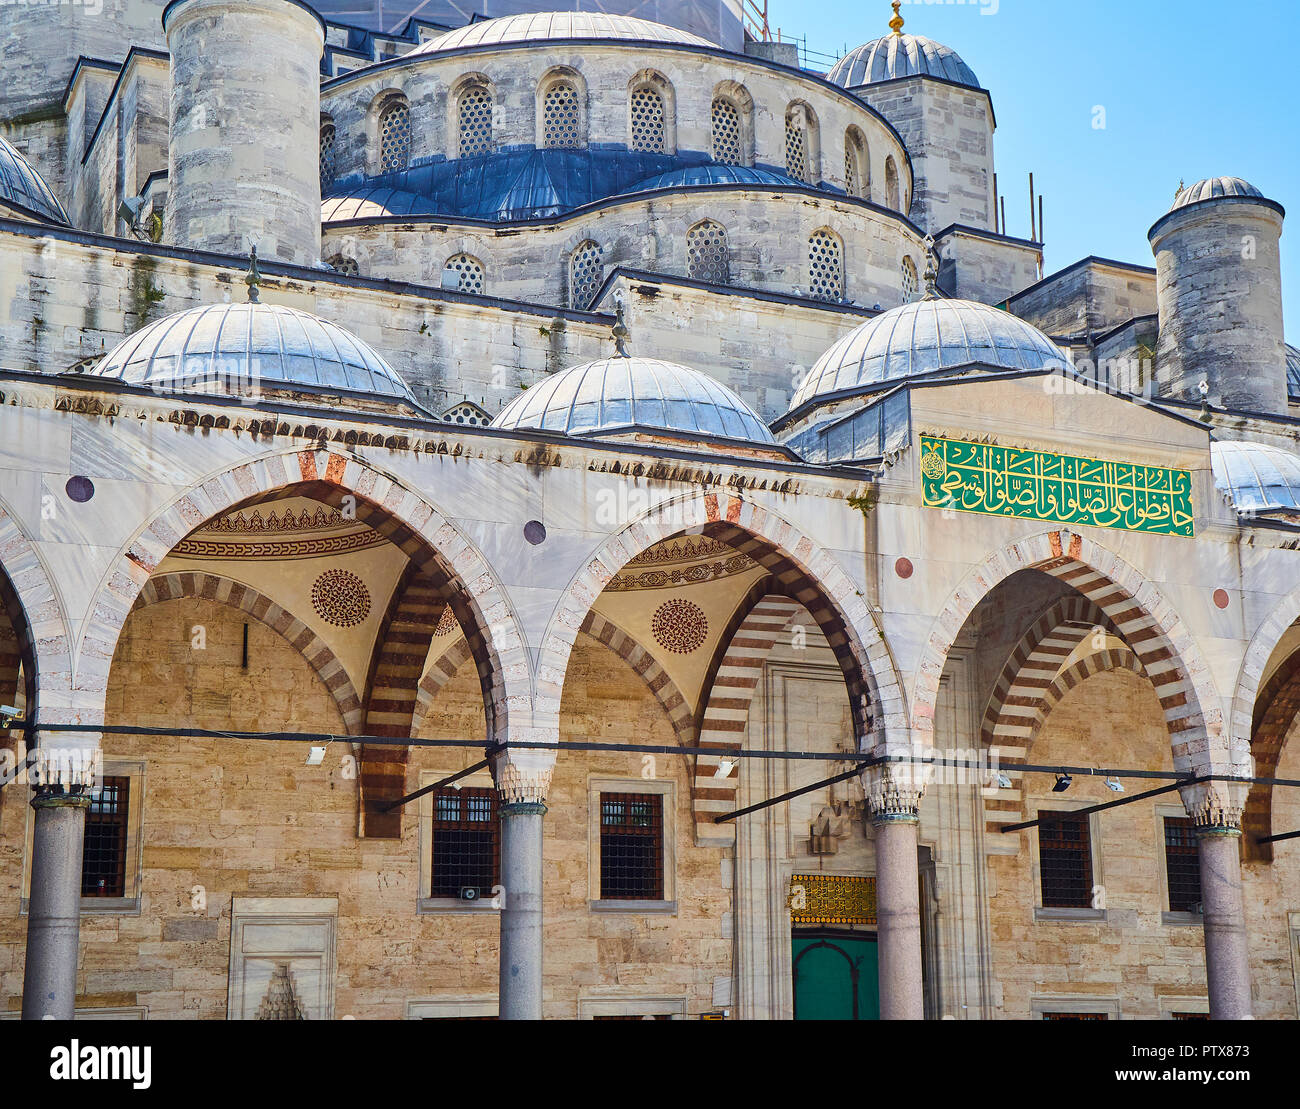 Principal entry at the arcaded courtyard to The Sultan Ahmet Camii Mosque, also known as The Blue Mosque. Istanbul, Turkey. - Stock Image